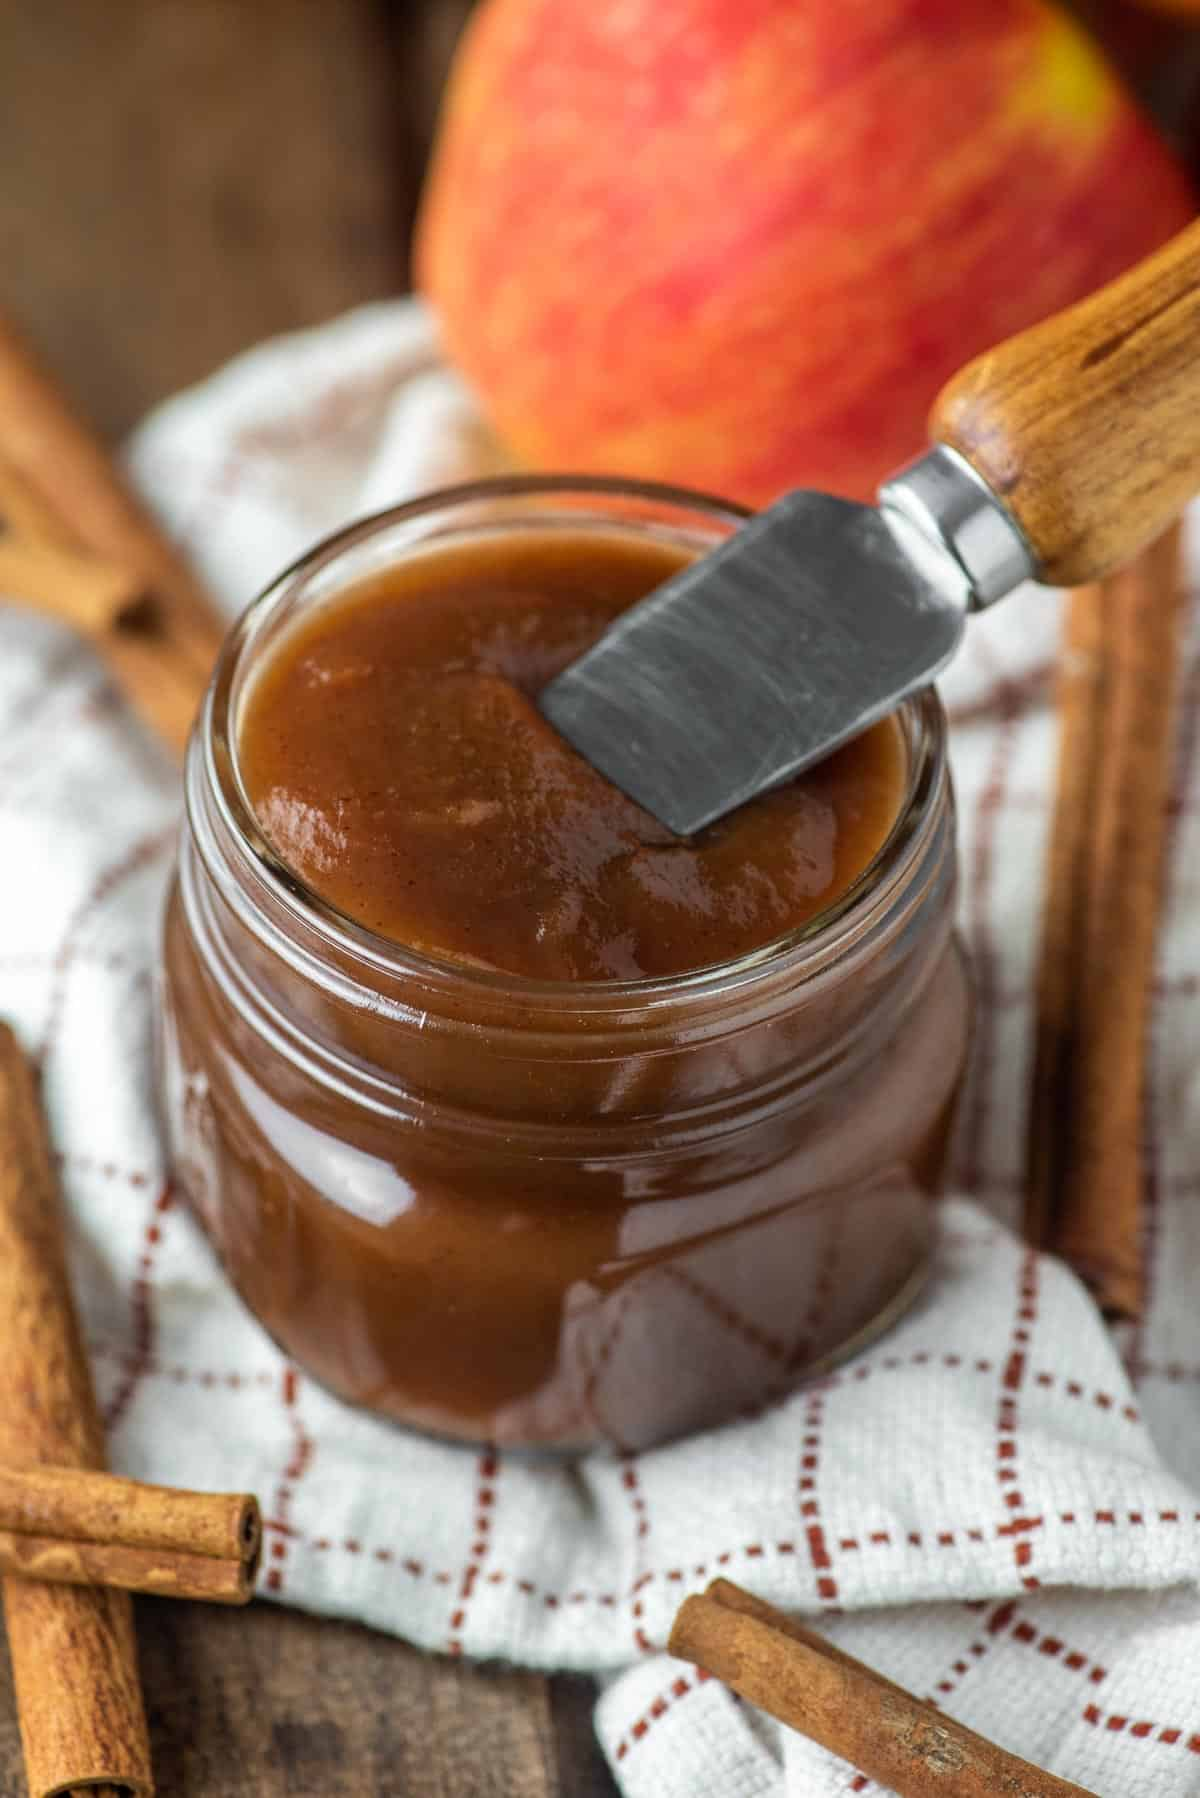 knife dipped in jar of apple butter